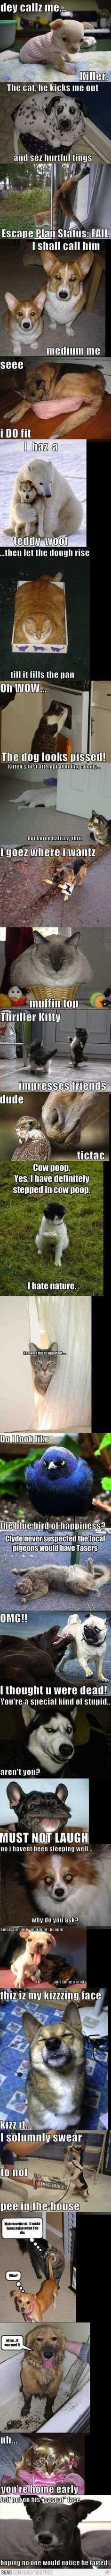 The Best Of Animal Memes -Yep, I totally was laughing out loud.